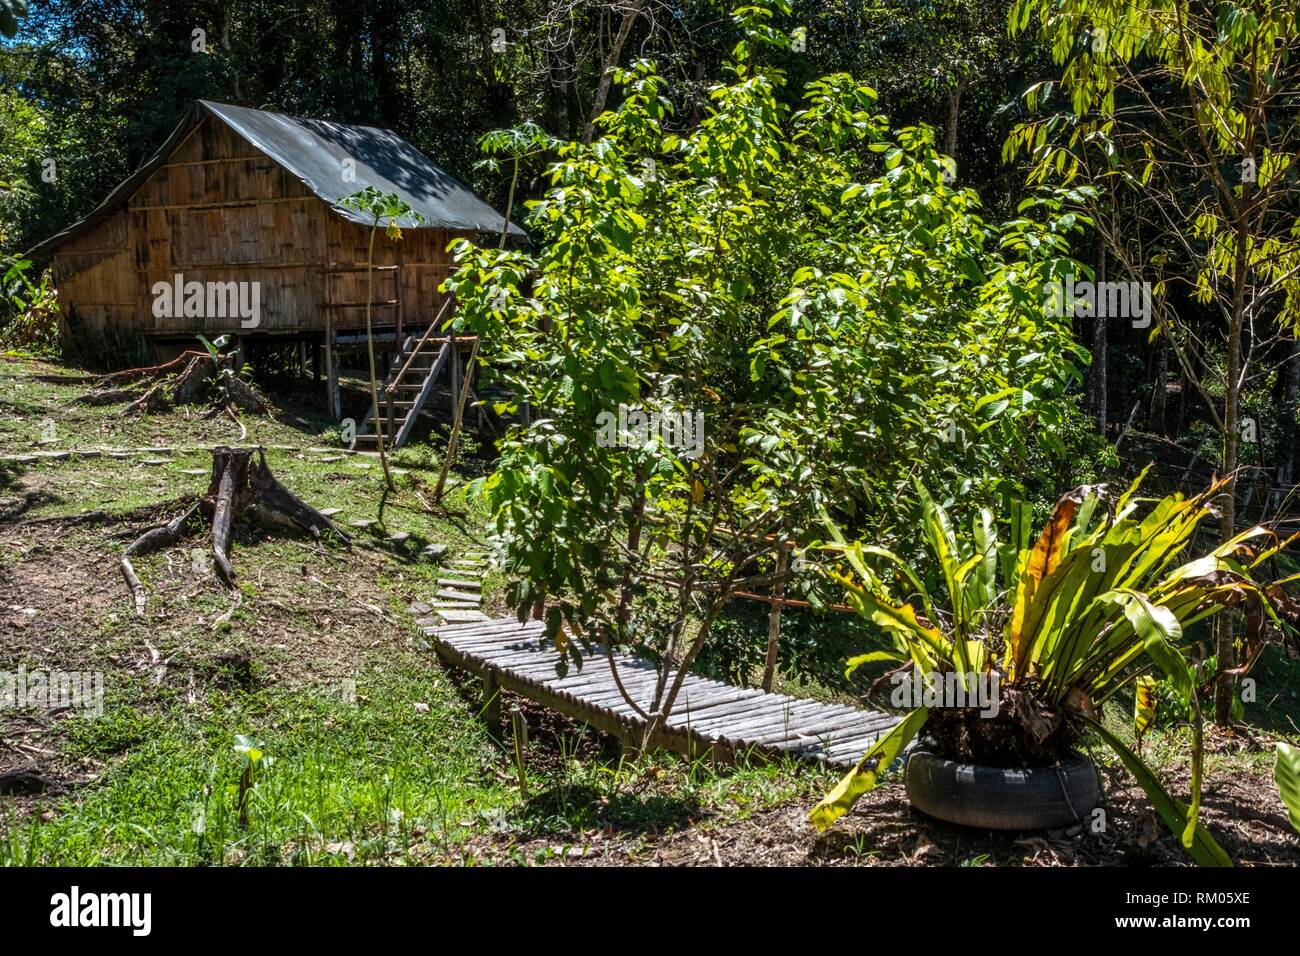 Homestay Stock Photos & Homestay Stock Images - Page 3 - Alamy